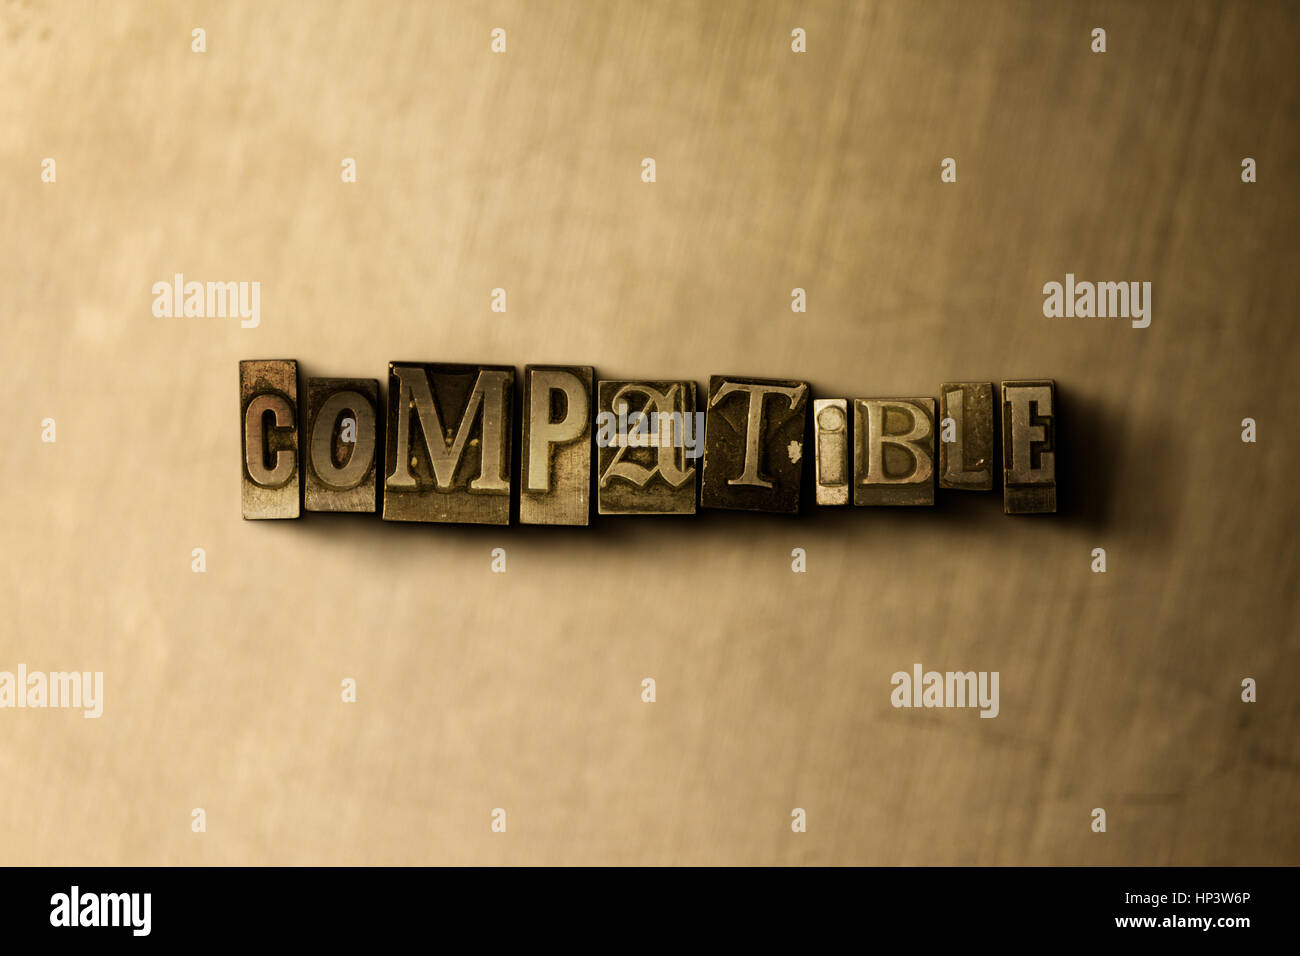 COMPATIBLE - close-up of grungy vintage typeset word on metal backdrop. Royalty free stock illustration.  Can be - Stock Image